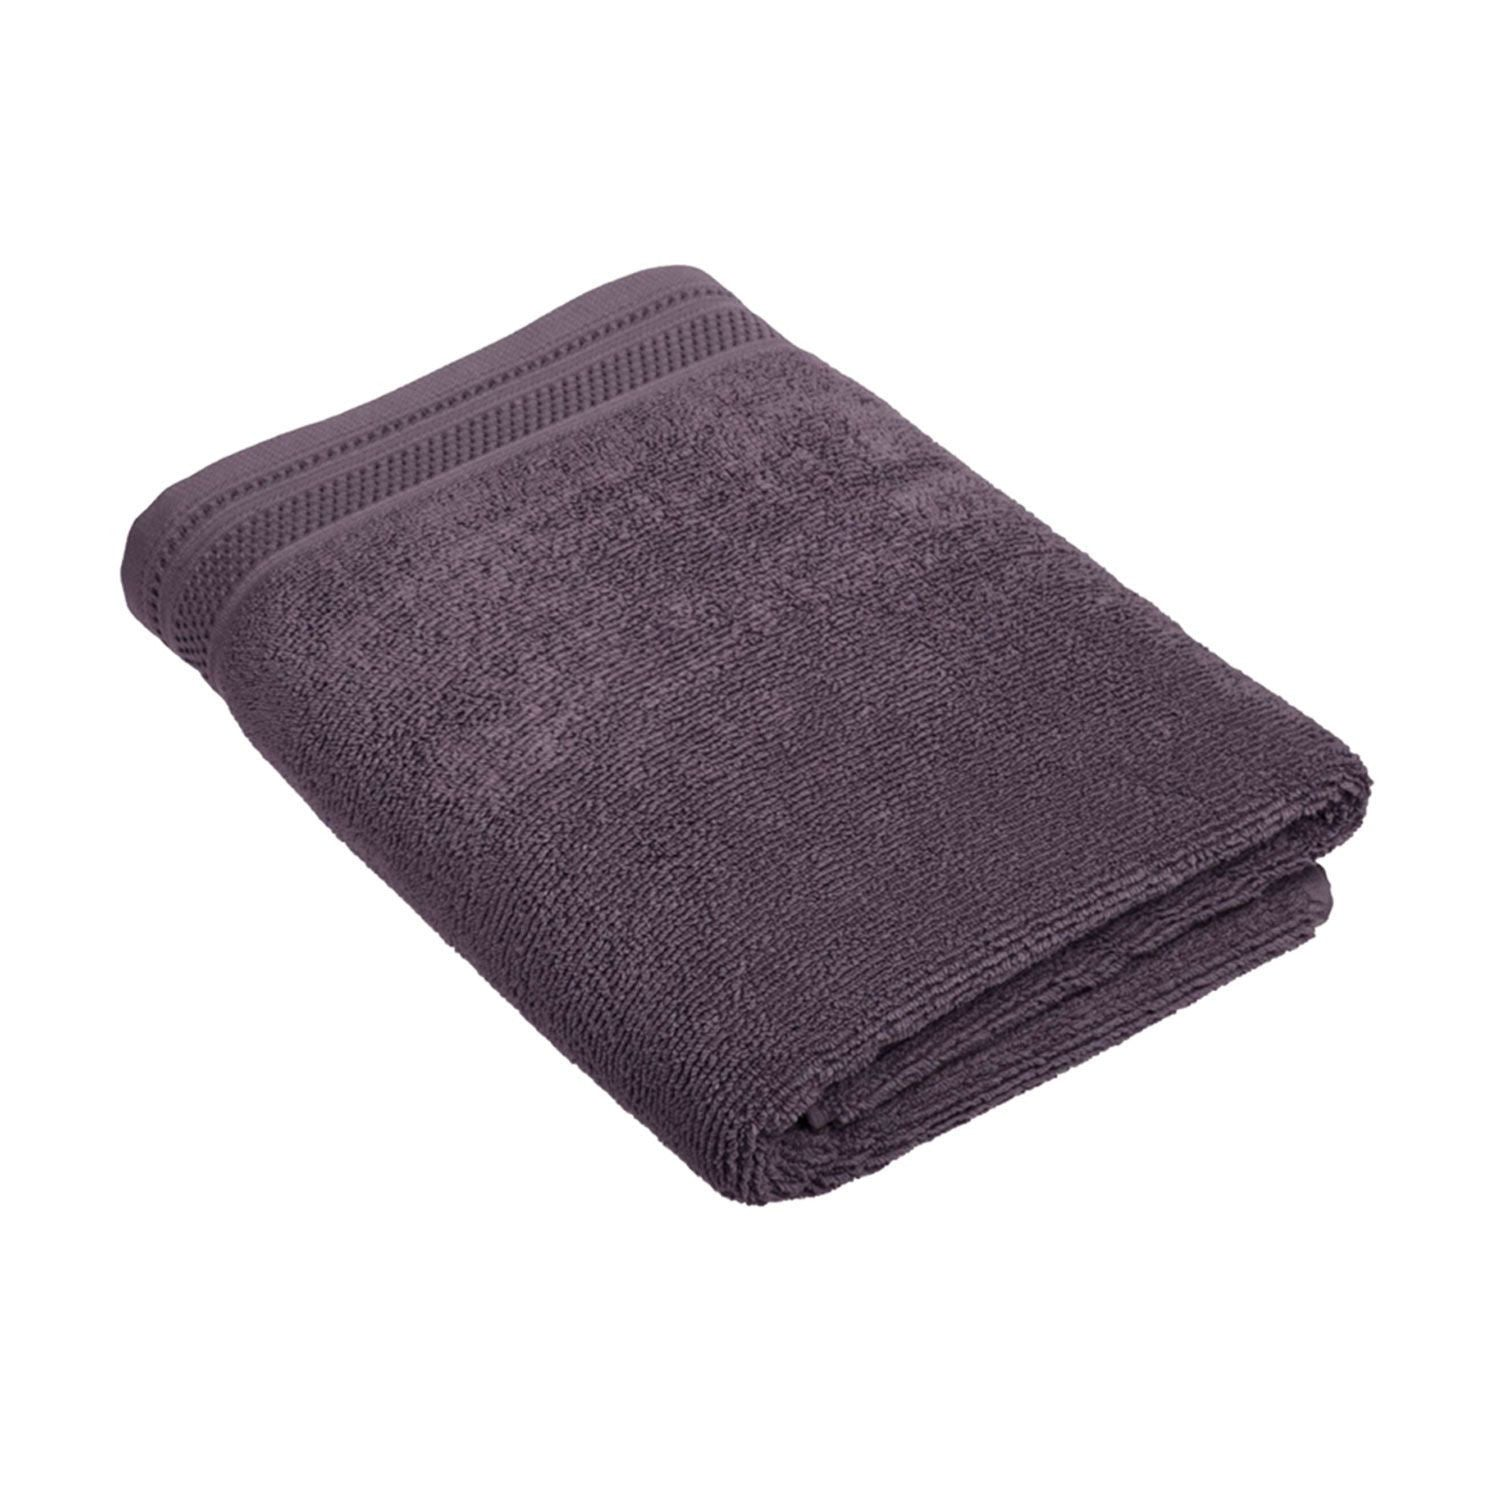 Crowning Touch Bath Towel - Eggplant